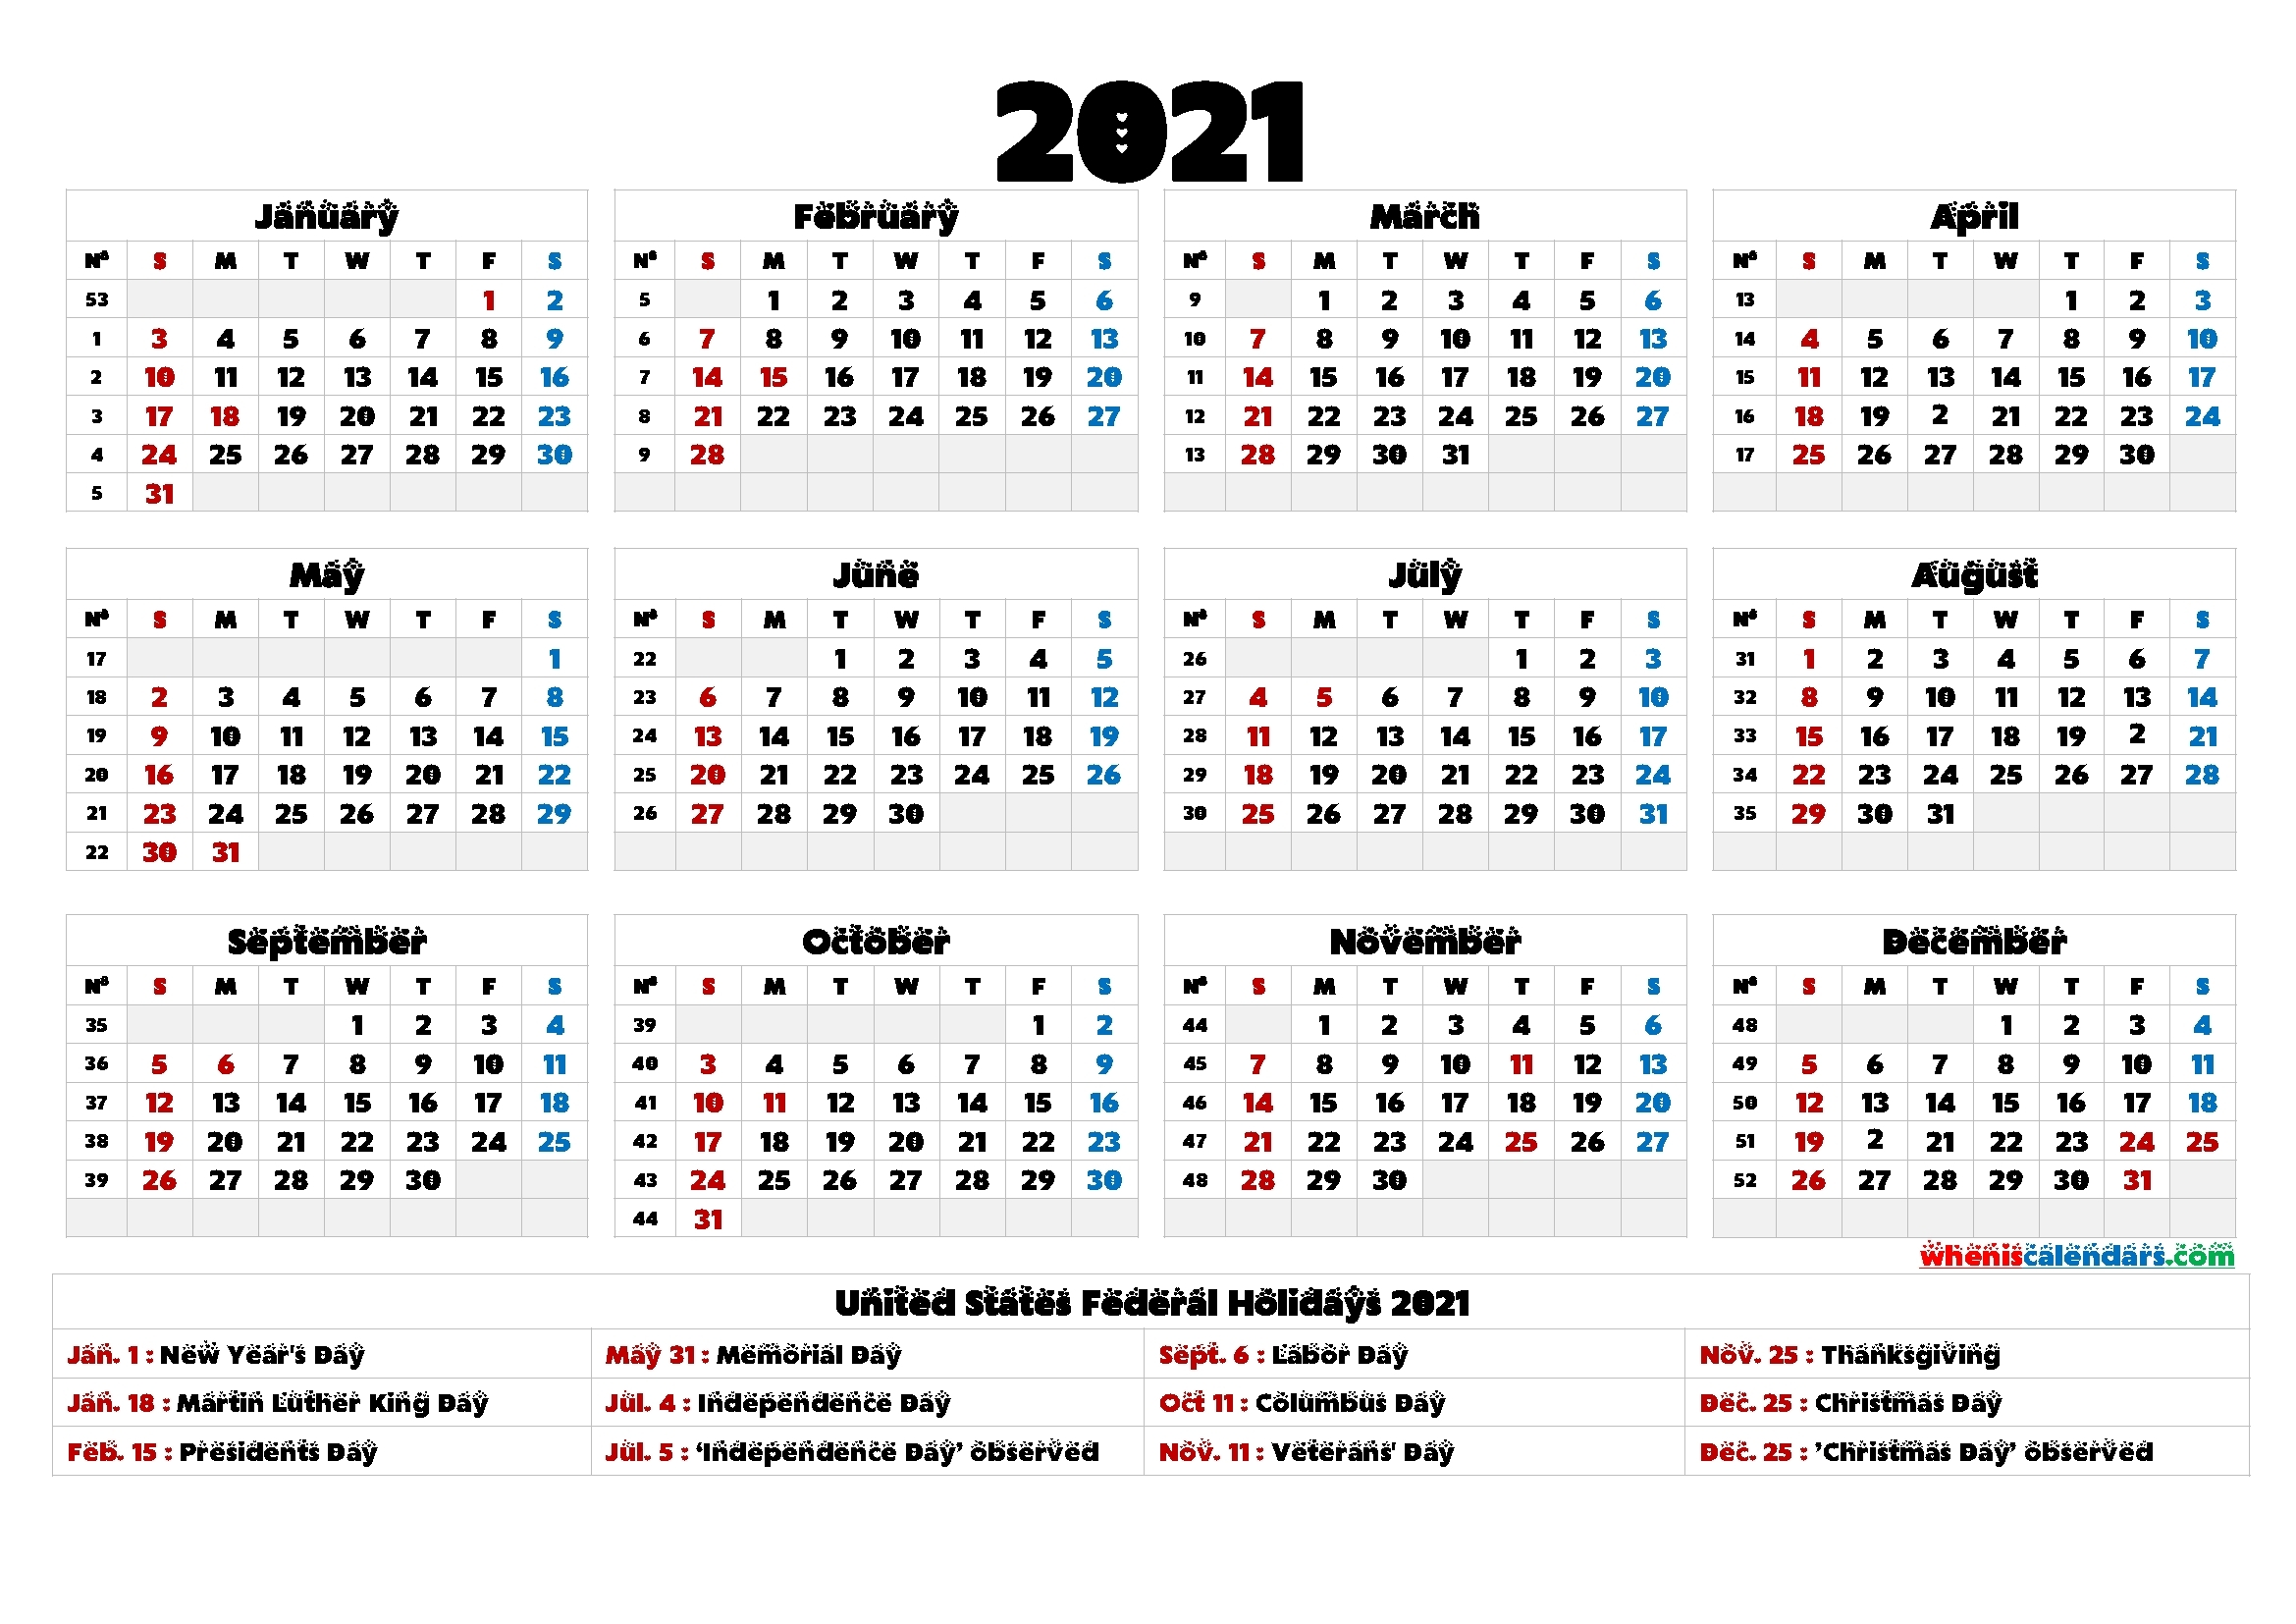 4Mmonth Calendar On One Page 2021 - Example Calendar Printable regarding Printable 2021 Monthly Calendar Template Image